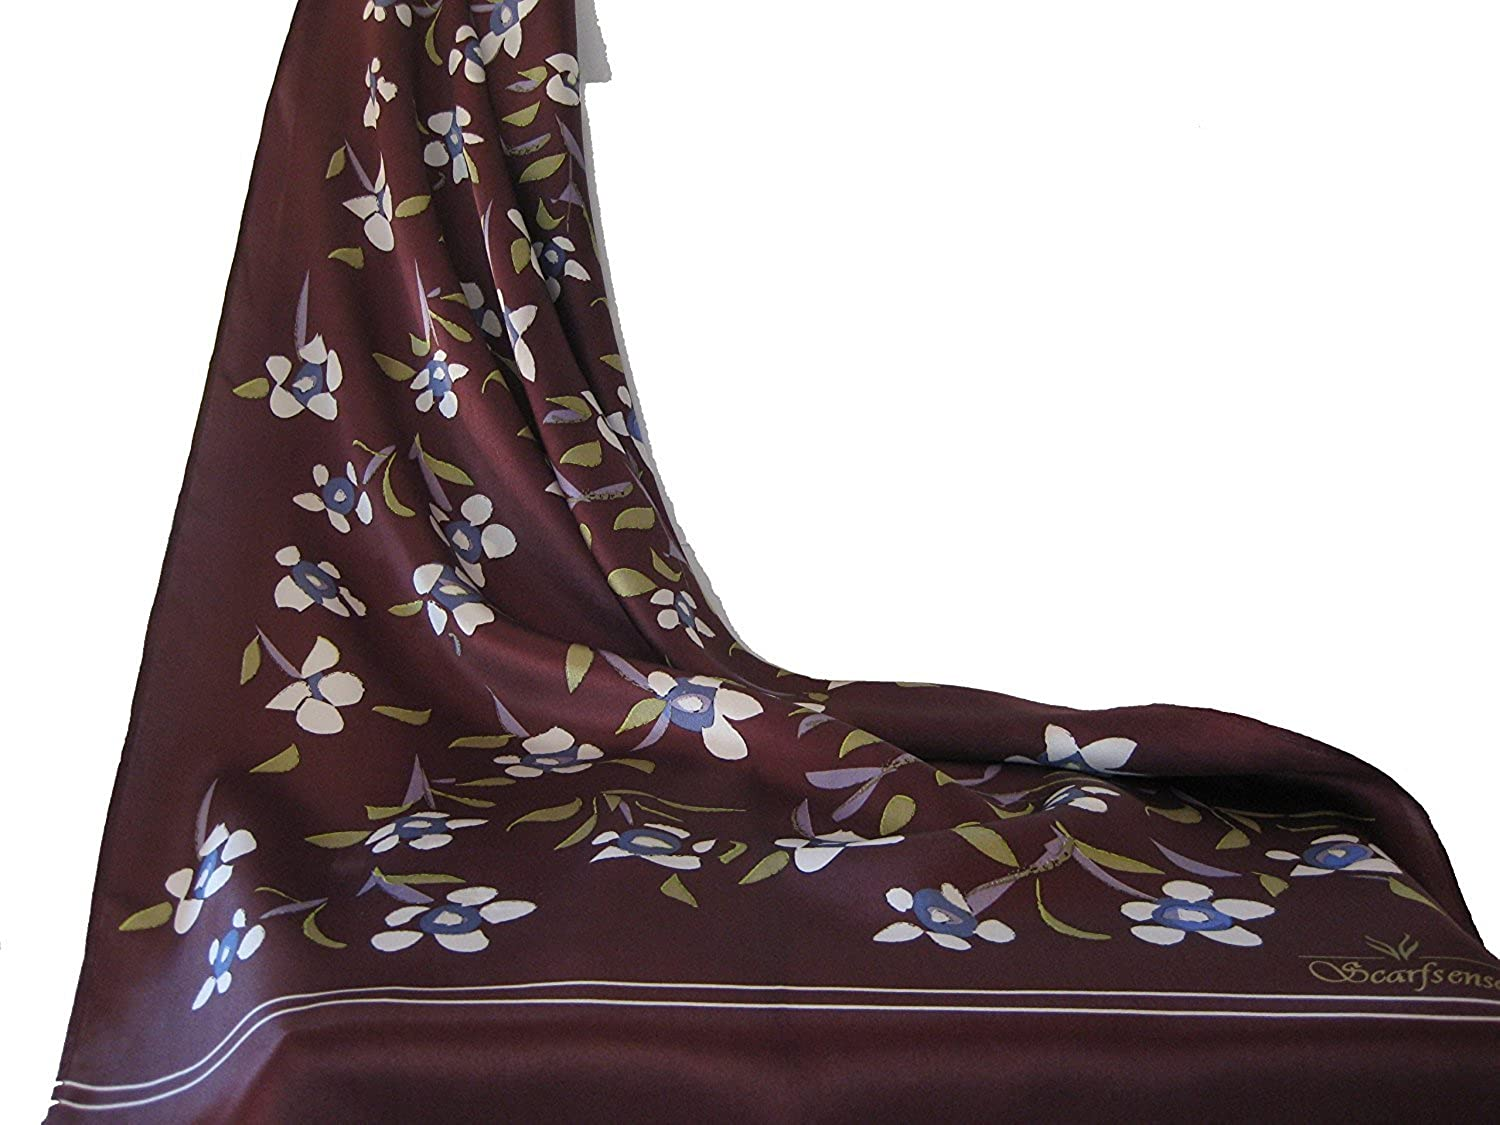 100% Silk Scarf In A Shade of Brown That's Preferred Over The Rest